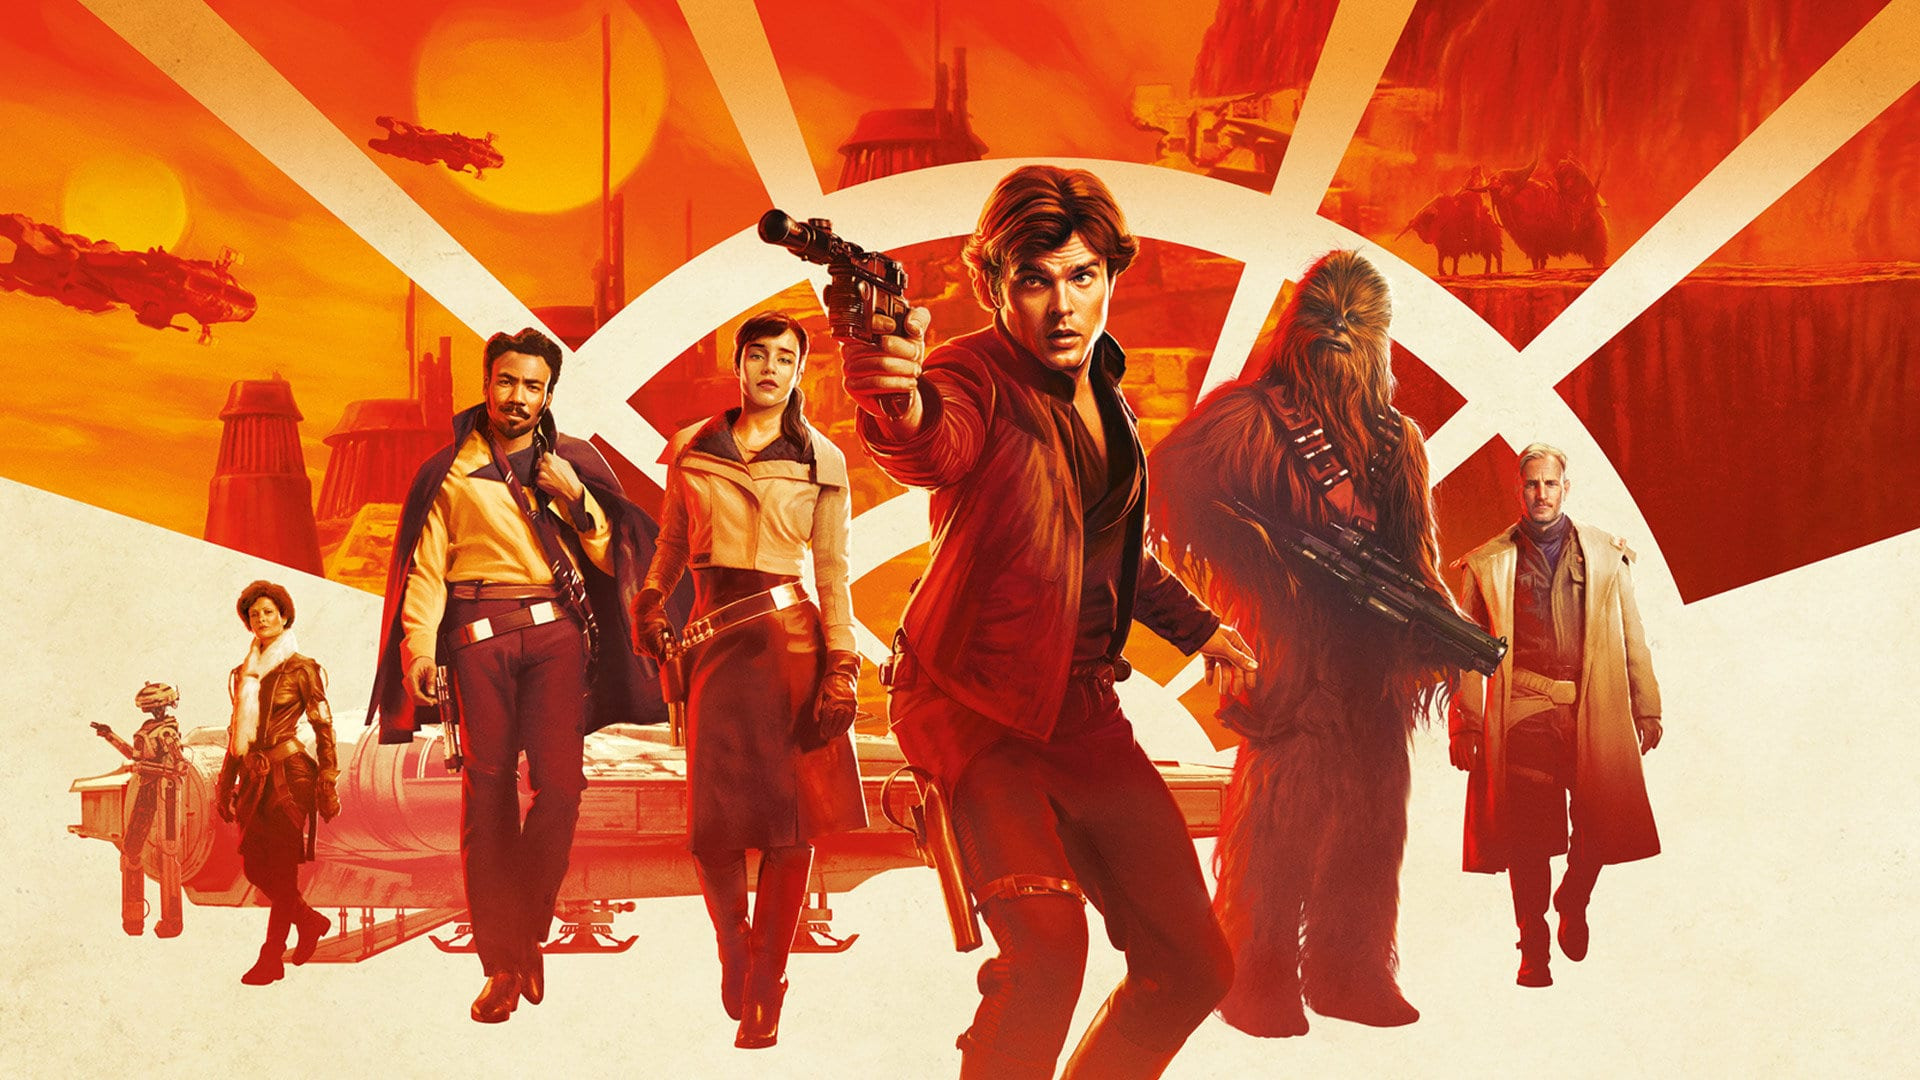 Solo: possibile un sequel dello spin-off di Star Wars su Disney+?